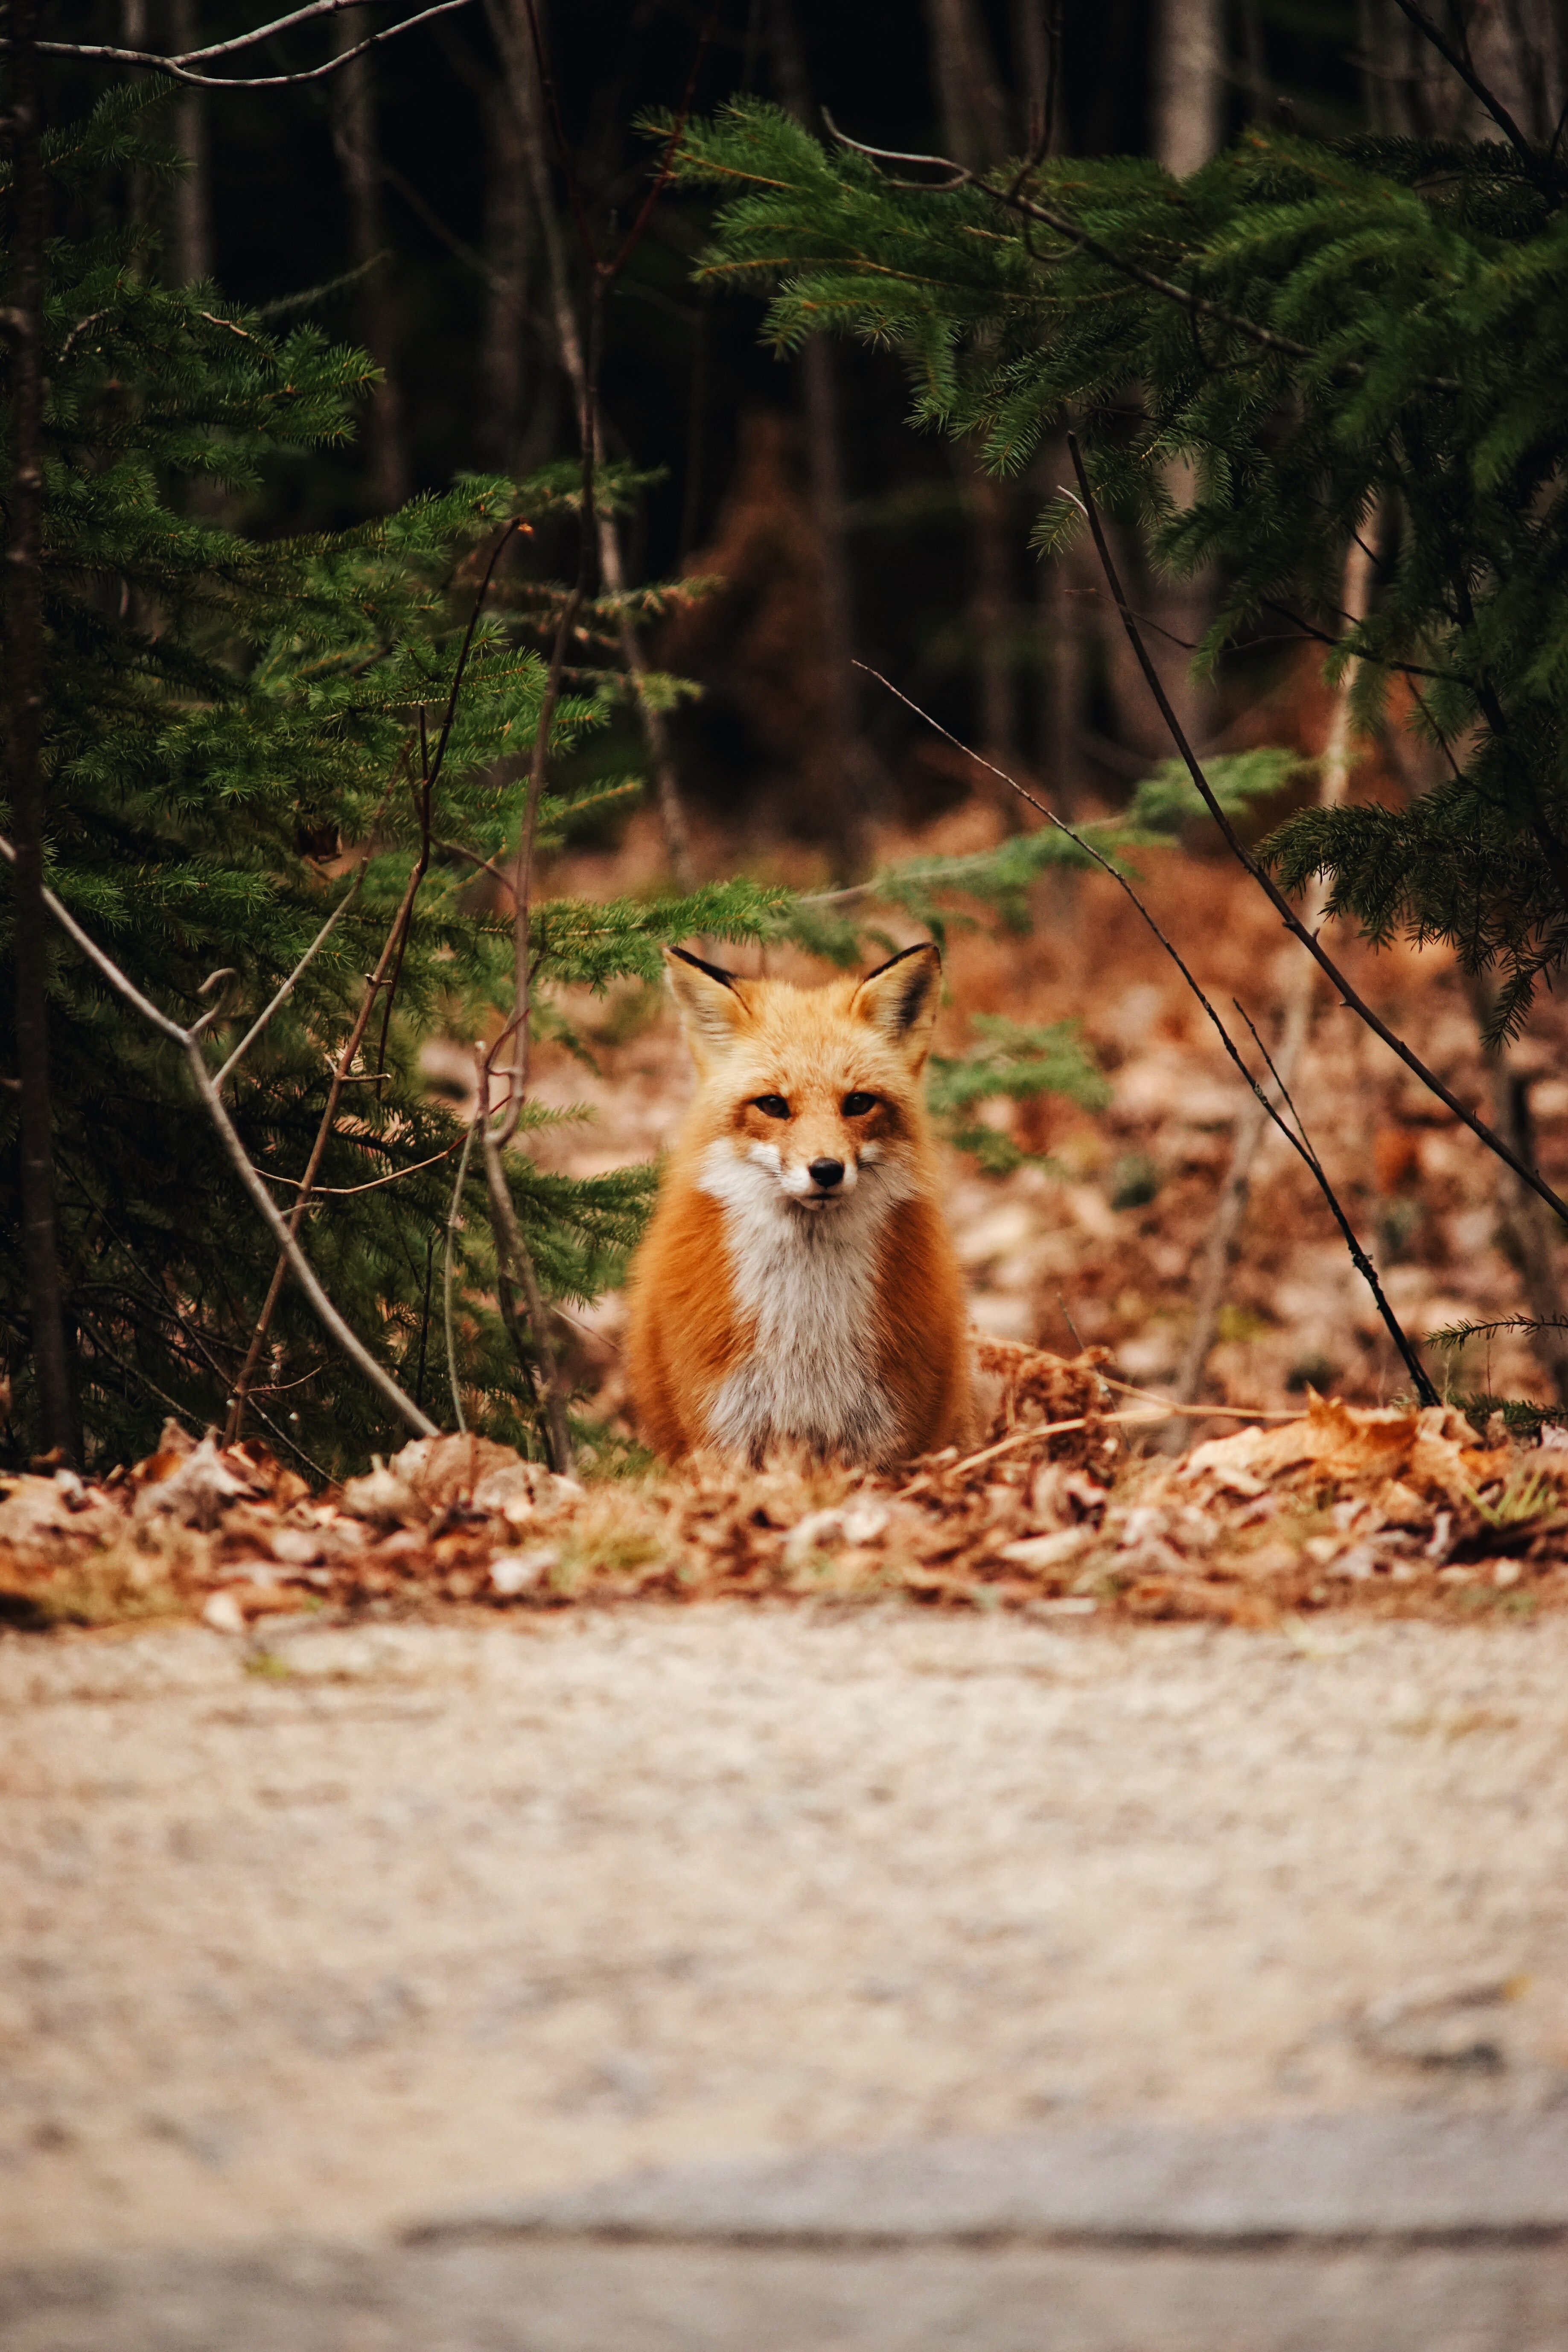 53993 download wallpaper Animals, Fox, Predator, Forest, Leaves, Autumn screensavers and pictures for free